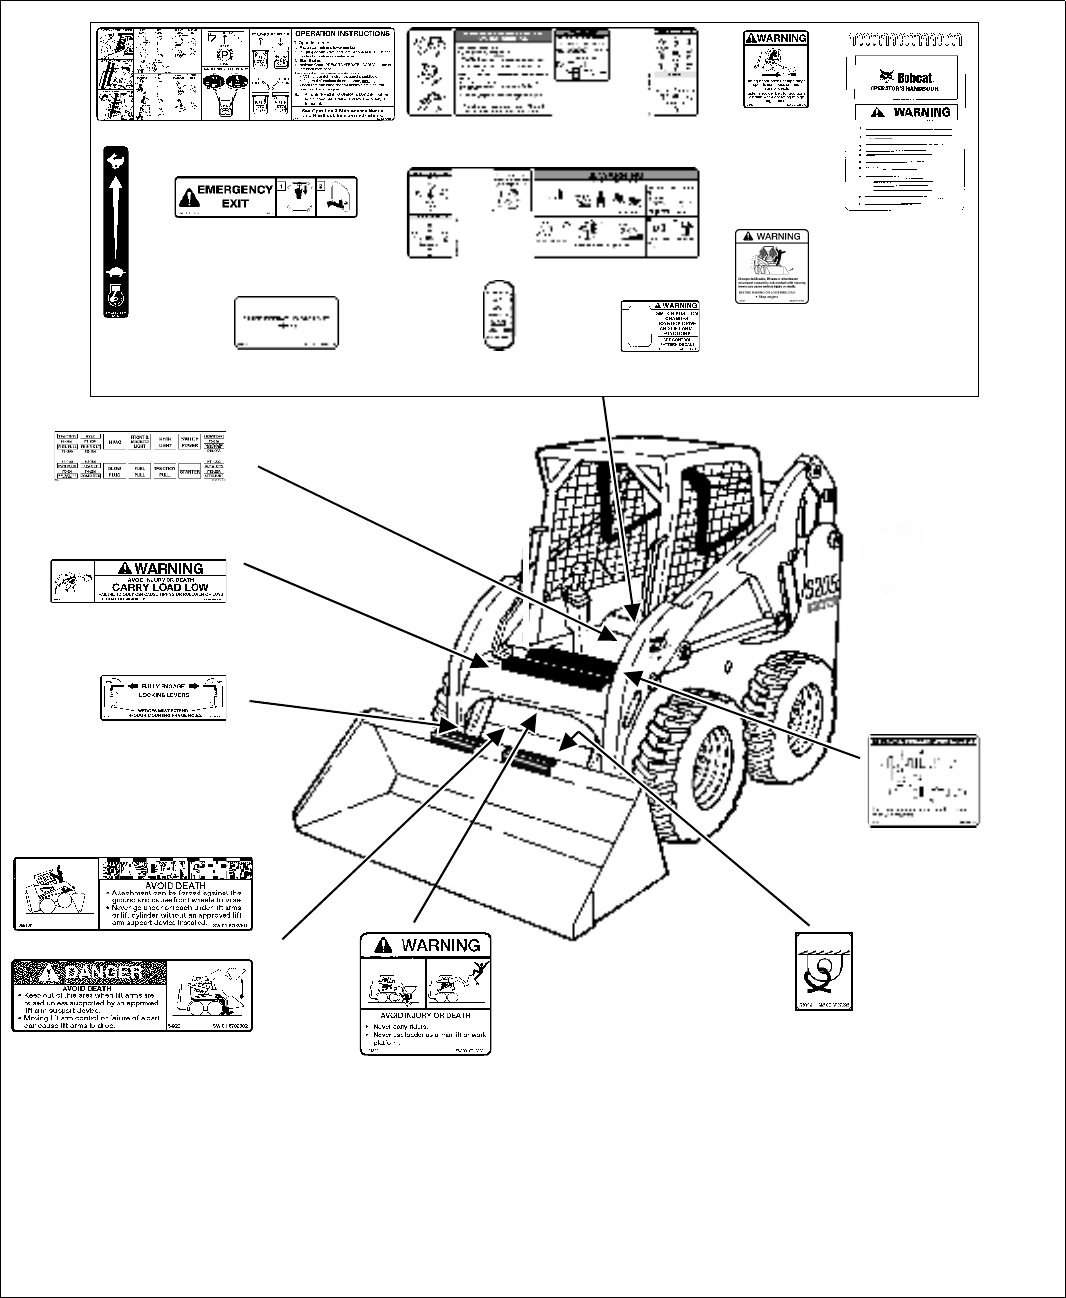 ignition fuse location bobcat 743 motorcycle schematic bobcat fuse diagram 723 forklift bobcat home wiring diagrams